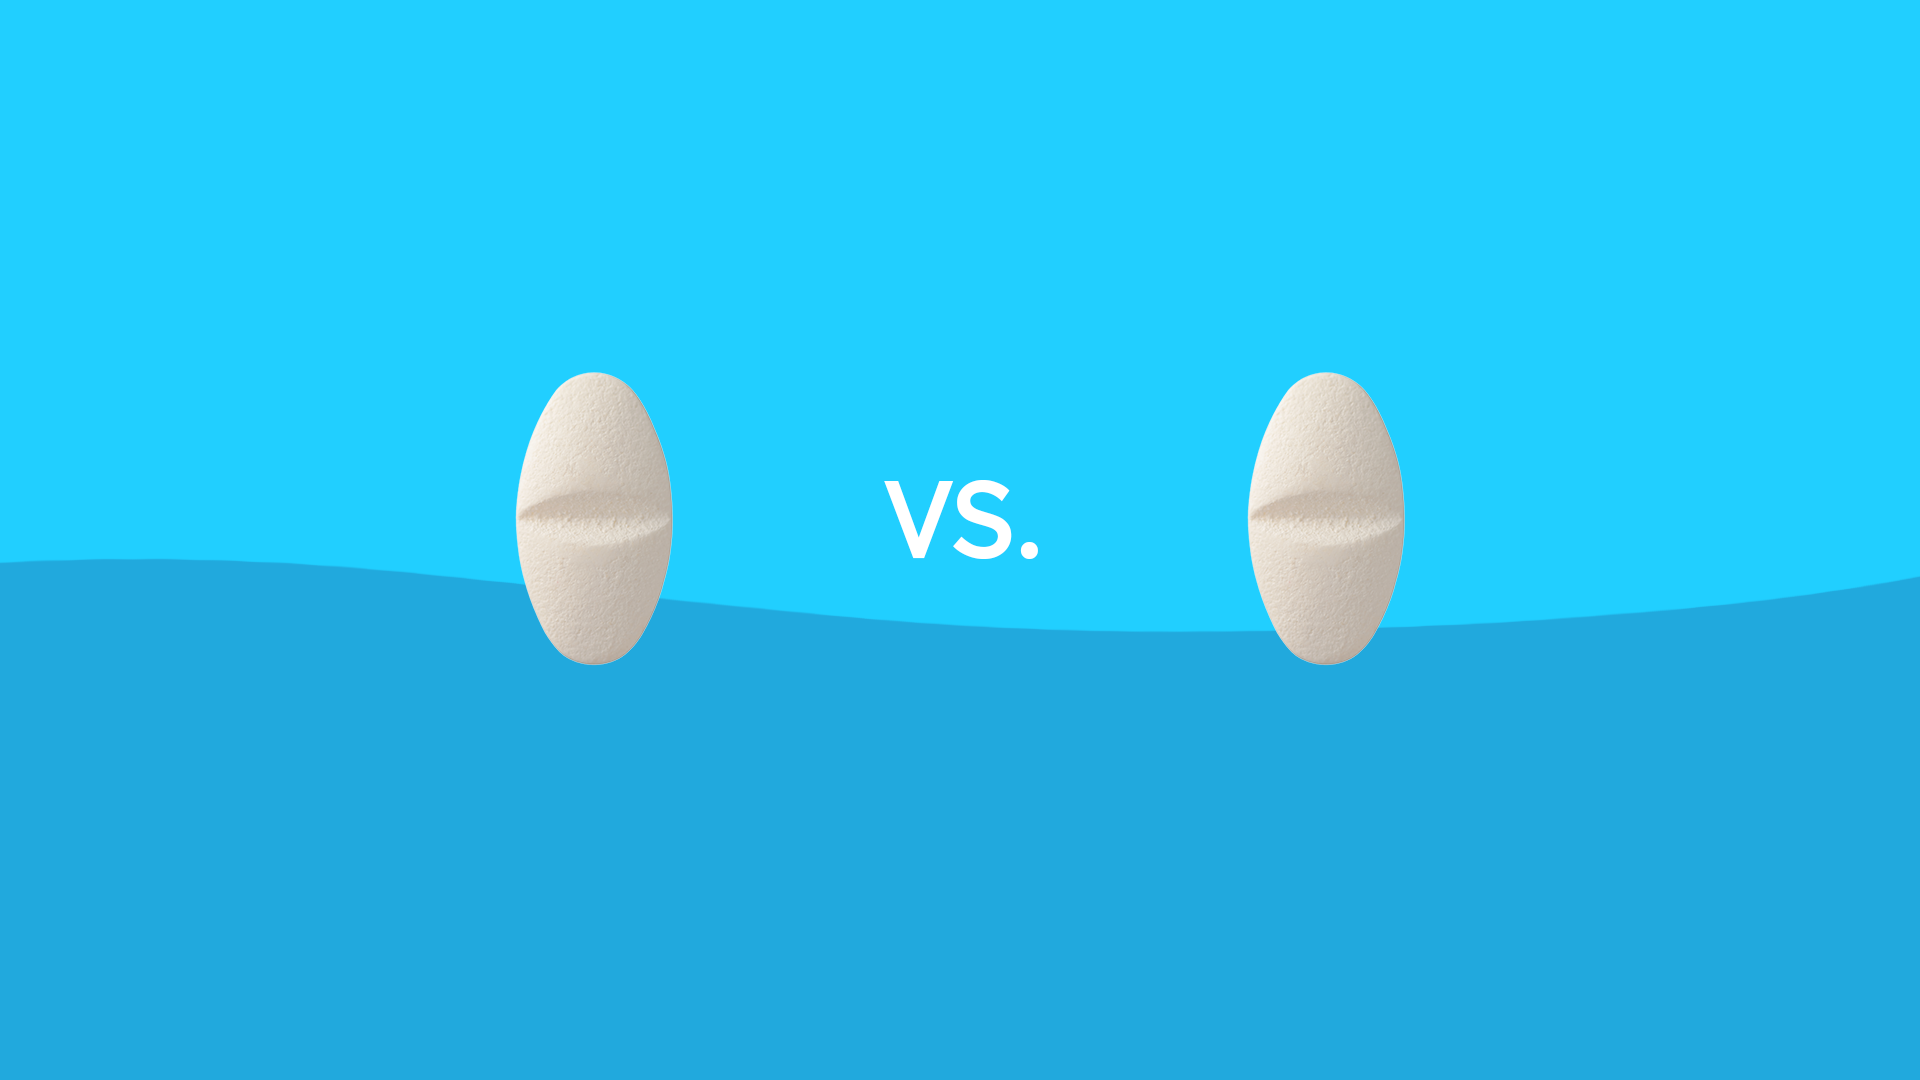 Descovy vs. Truvada: Differences, similarities, and which is better for you